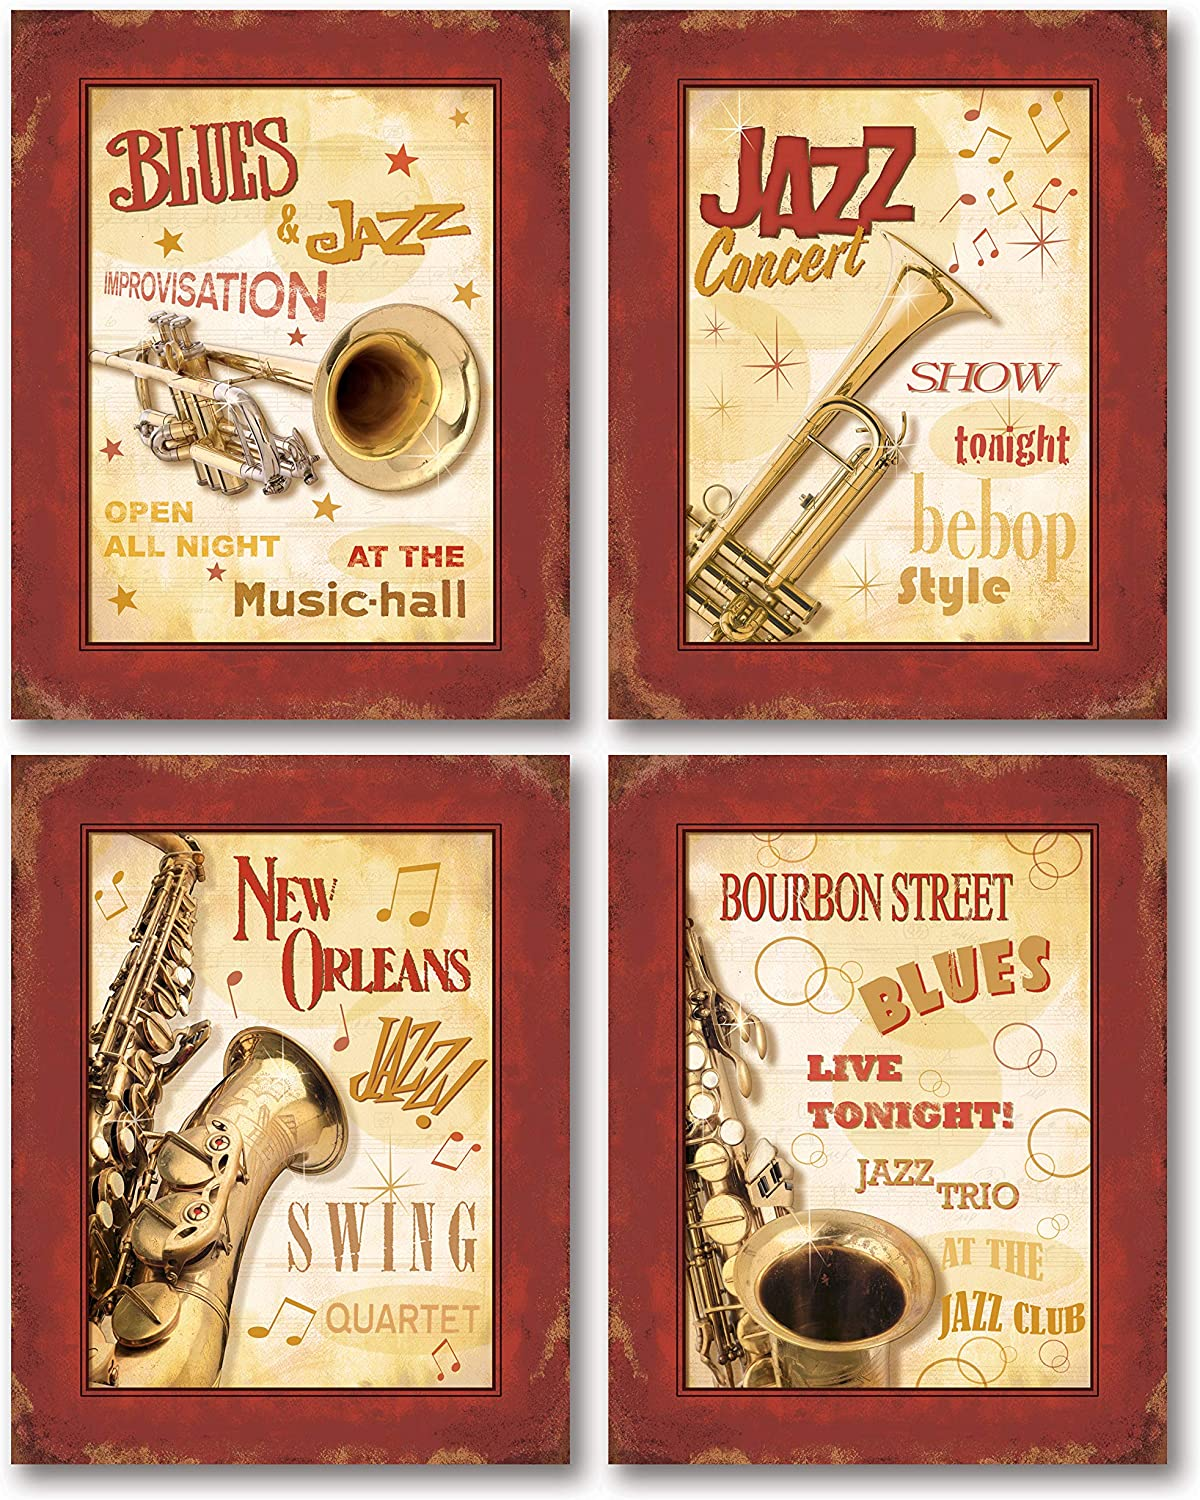 Vintage New Orleans Jazz and Blues Show Signs; Four 8x10in Poster Prints. Red/Cream